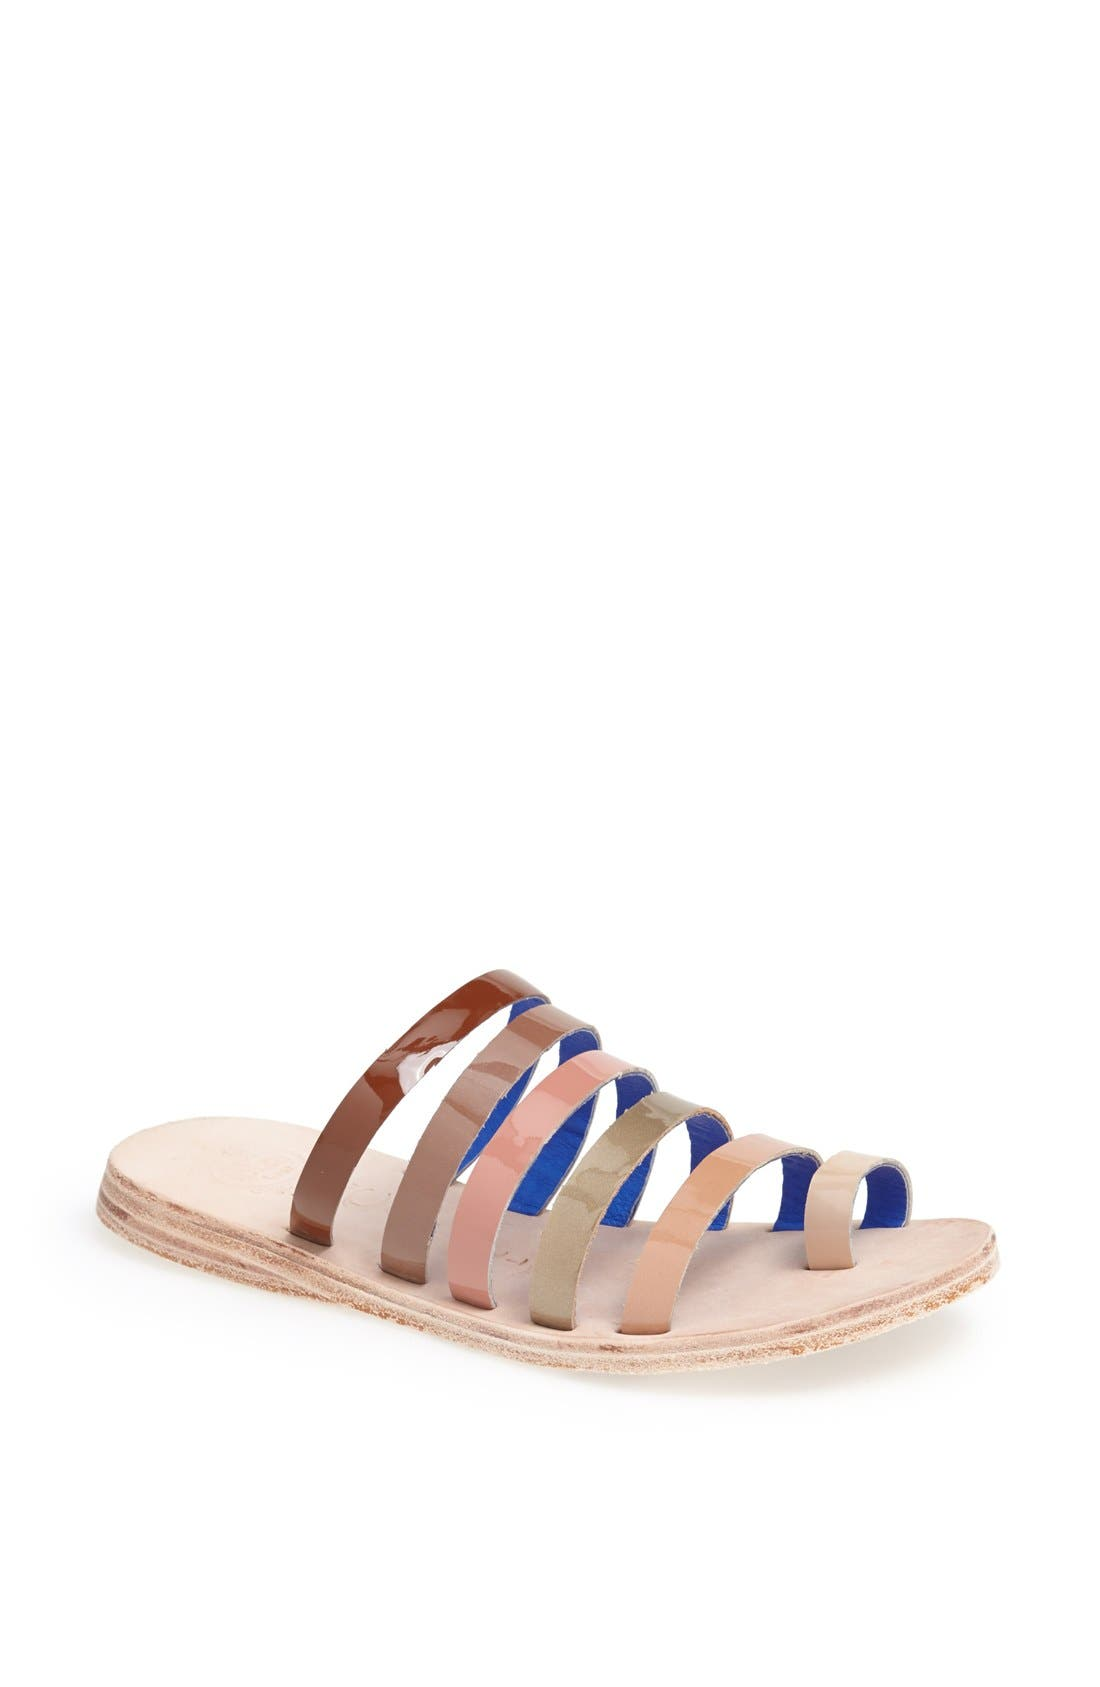 Alternate Image 1 Selected - Jeffrey Campbell 'Murud' Sandal